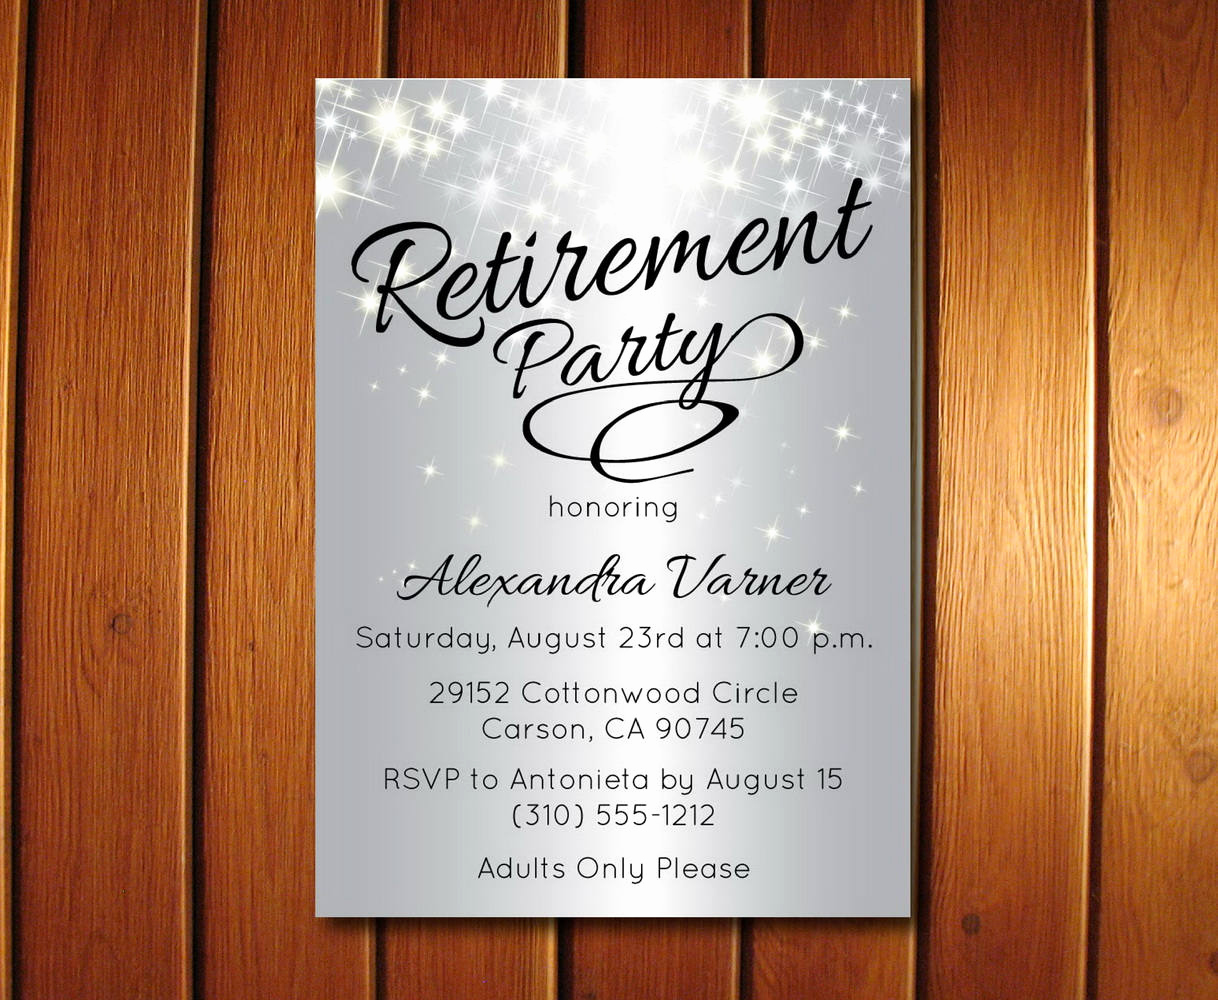 Invitation for Retirement Party Lovely Silver Retirement Party Invitation Elegant Retirement